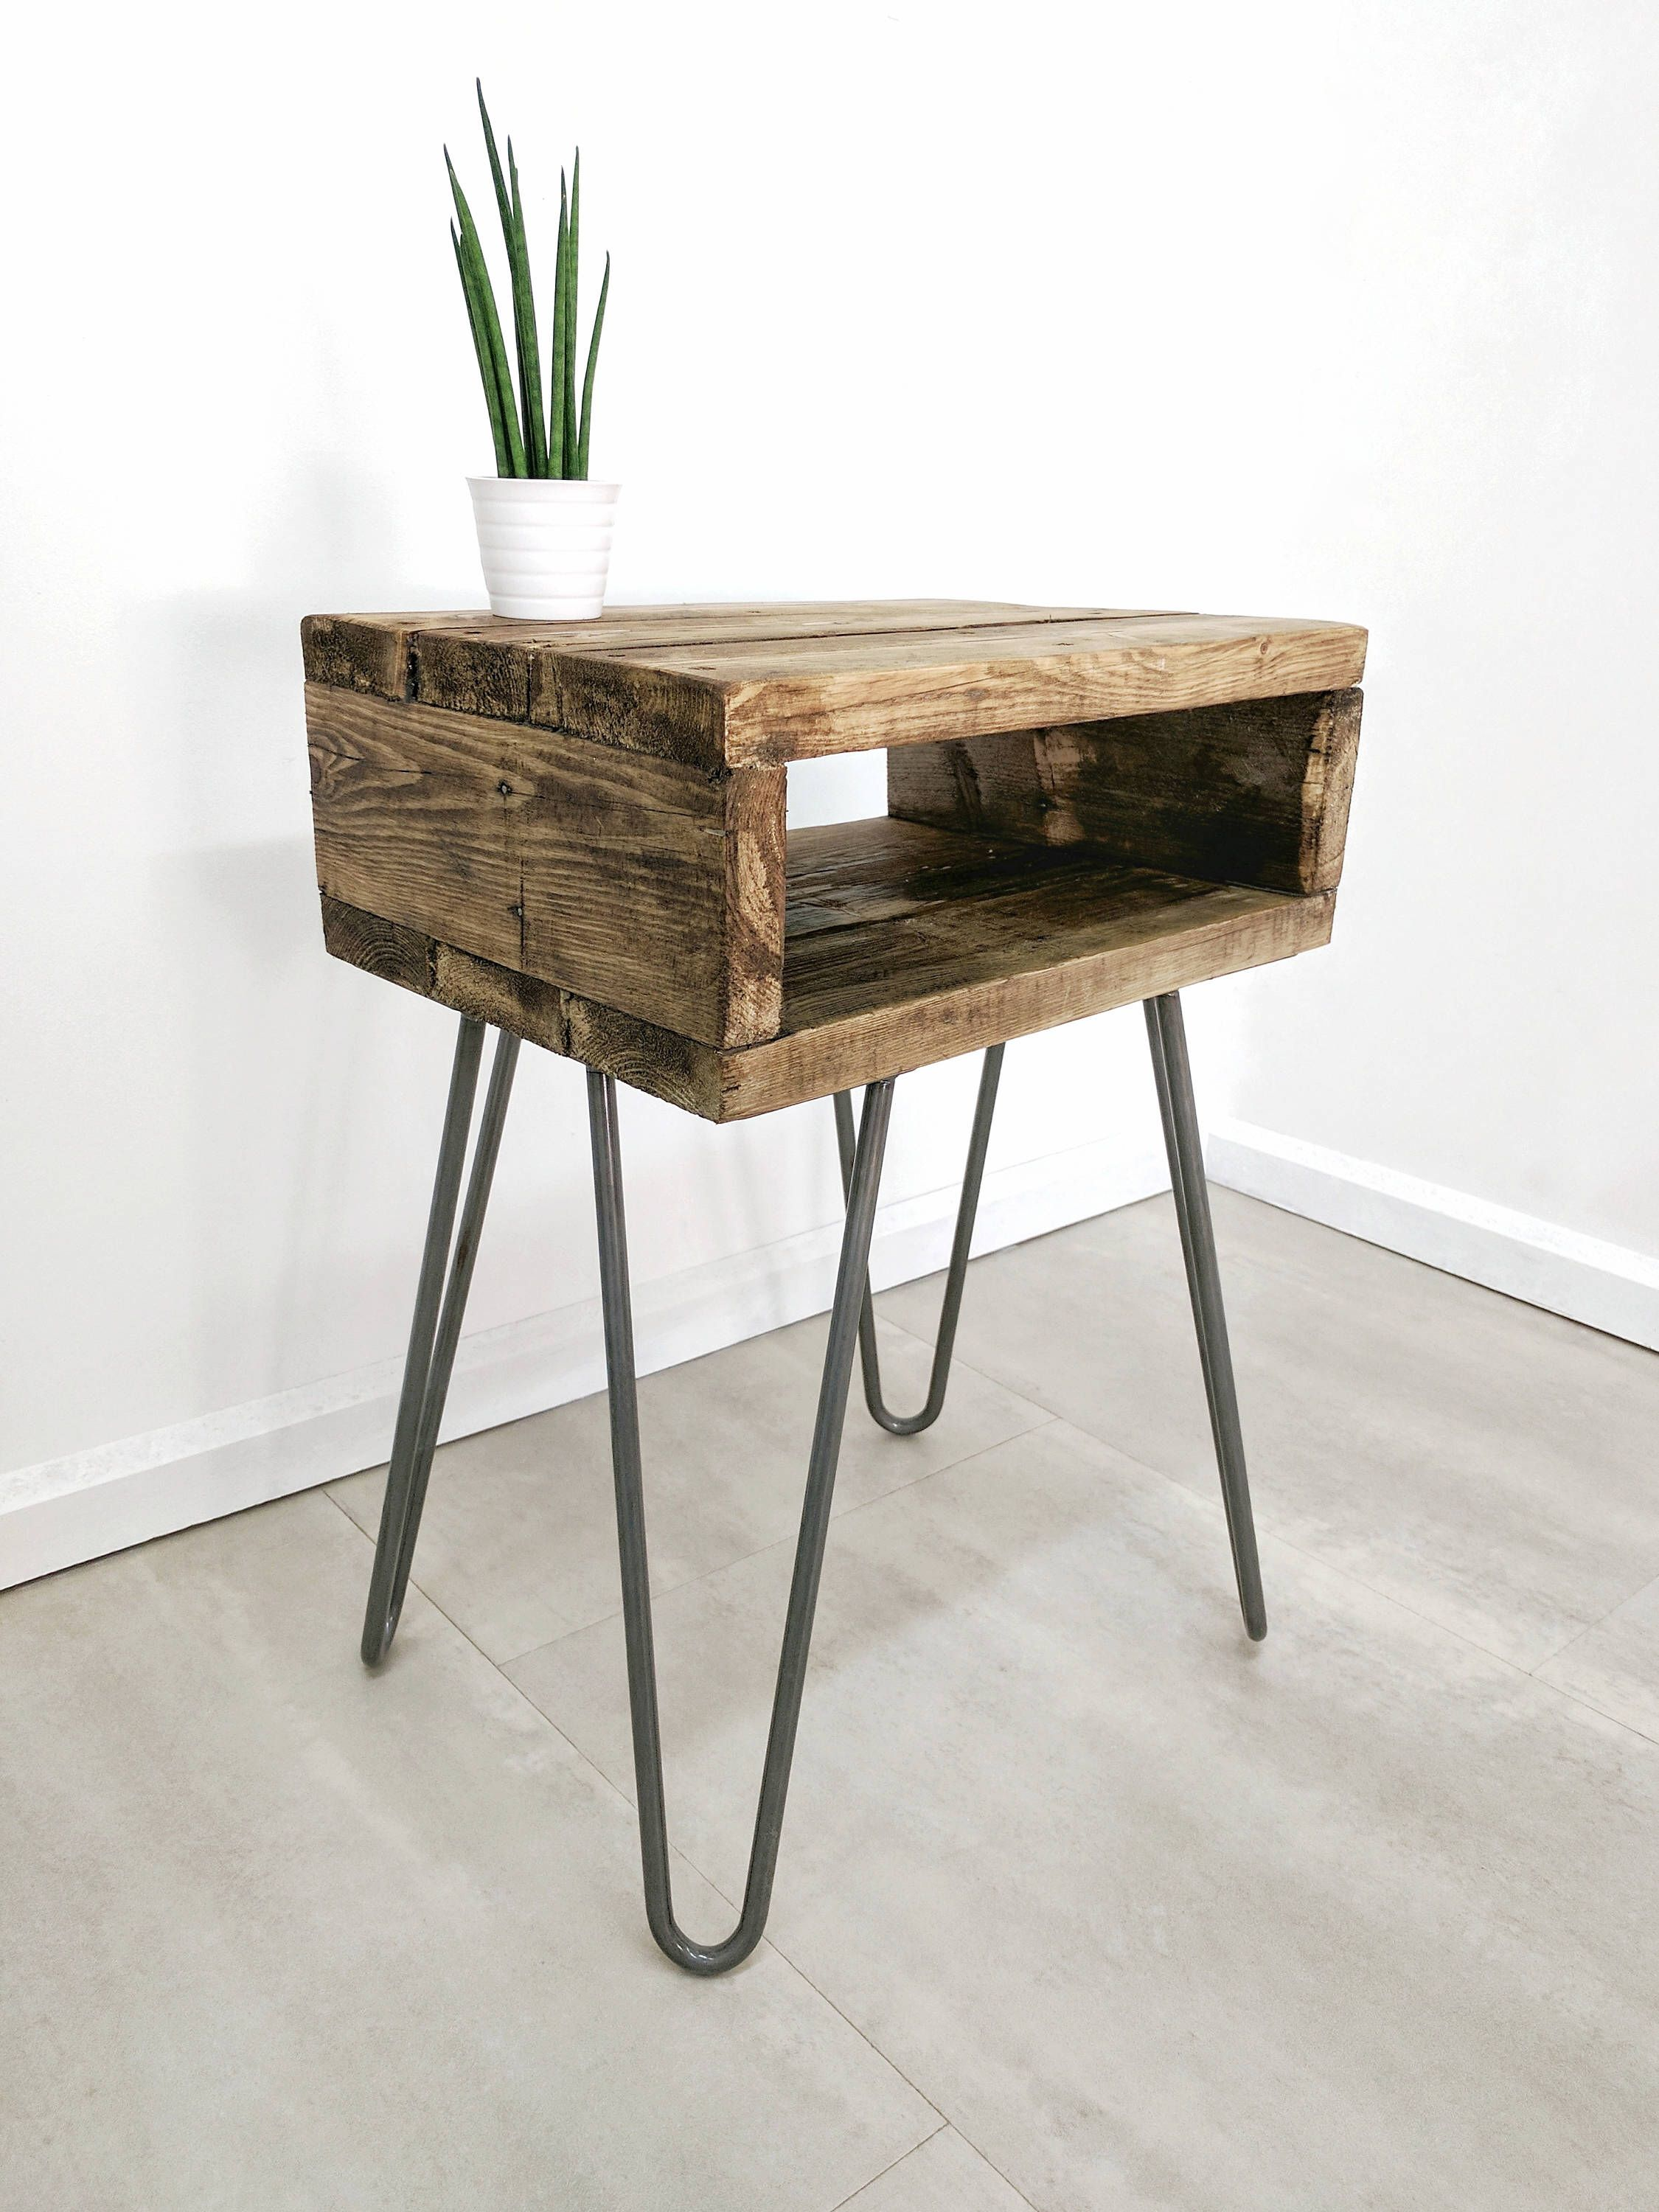 Reclaimed Wood Bedside Table Noa In Medium Oak Night Table Boho Plant Stand Chunky Side Table With Retro Side Table Boho Bedside Table Wood Bedside Table